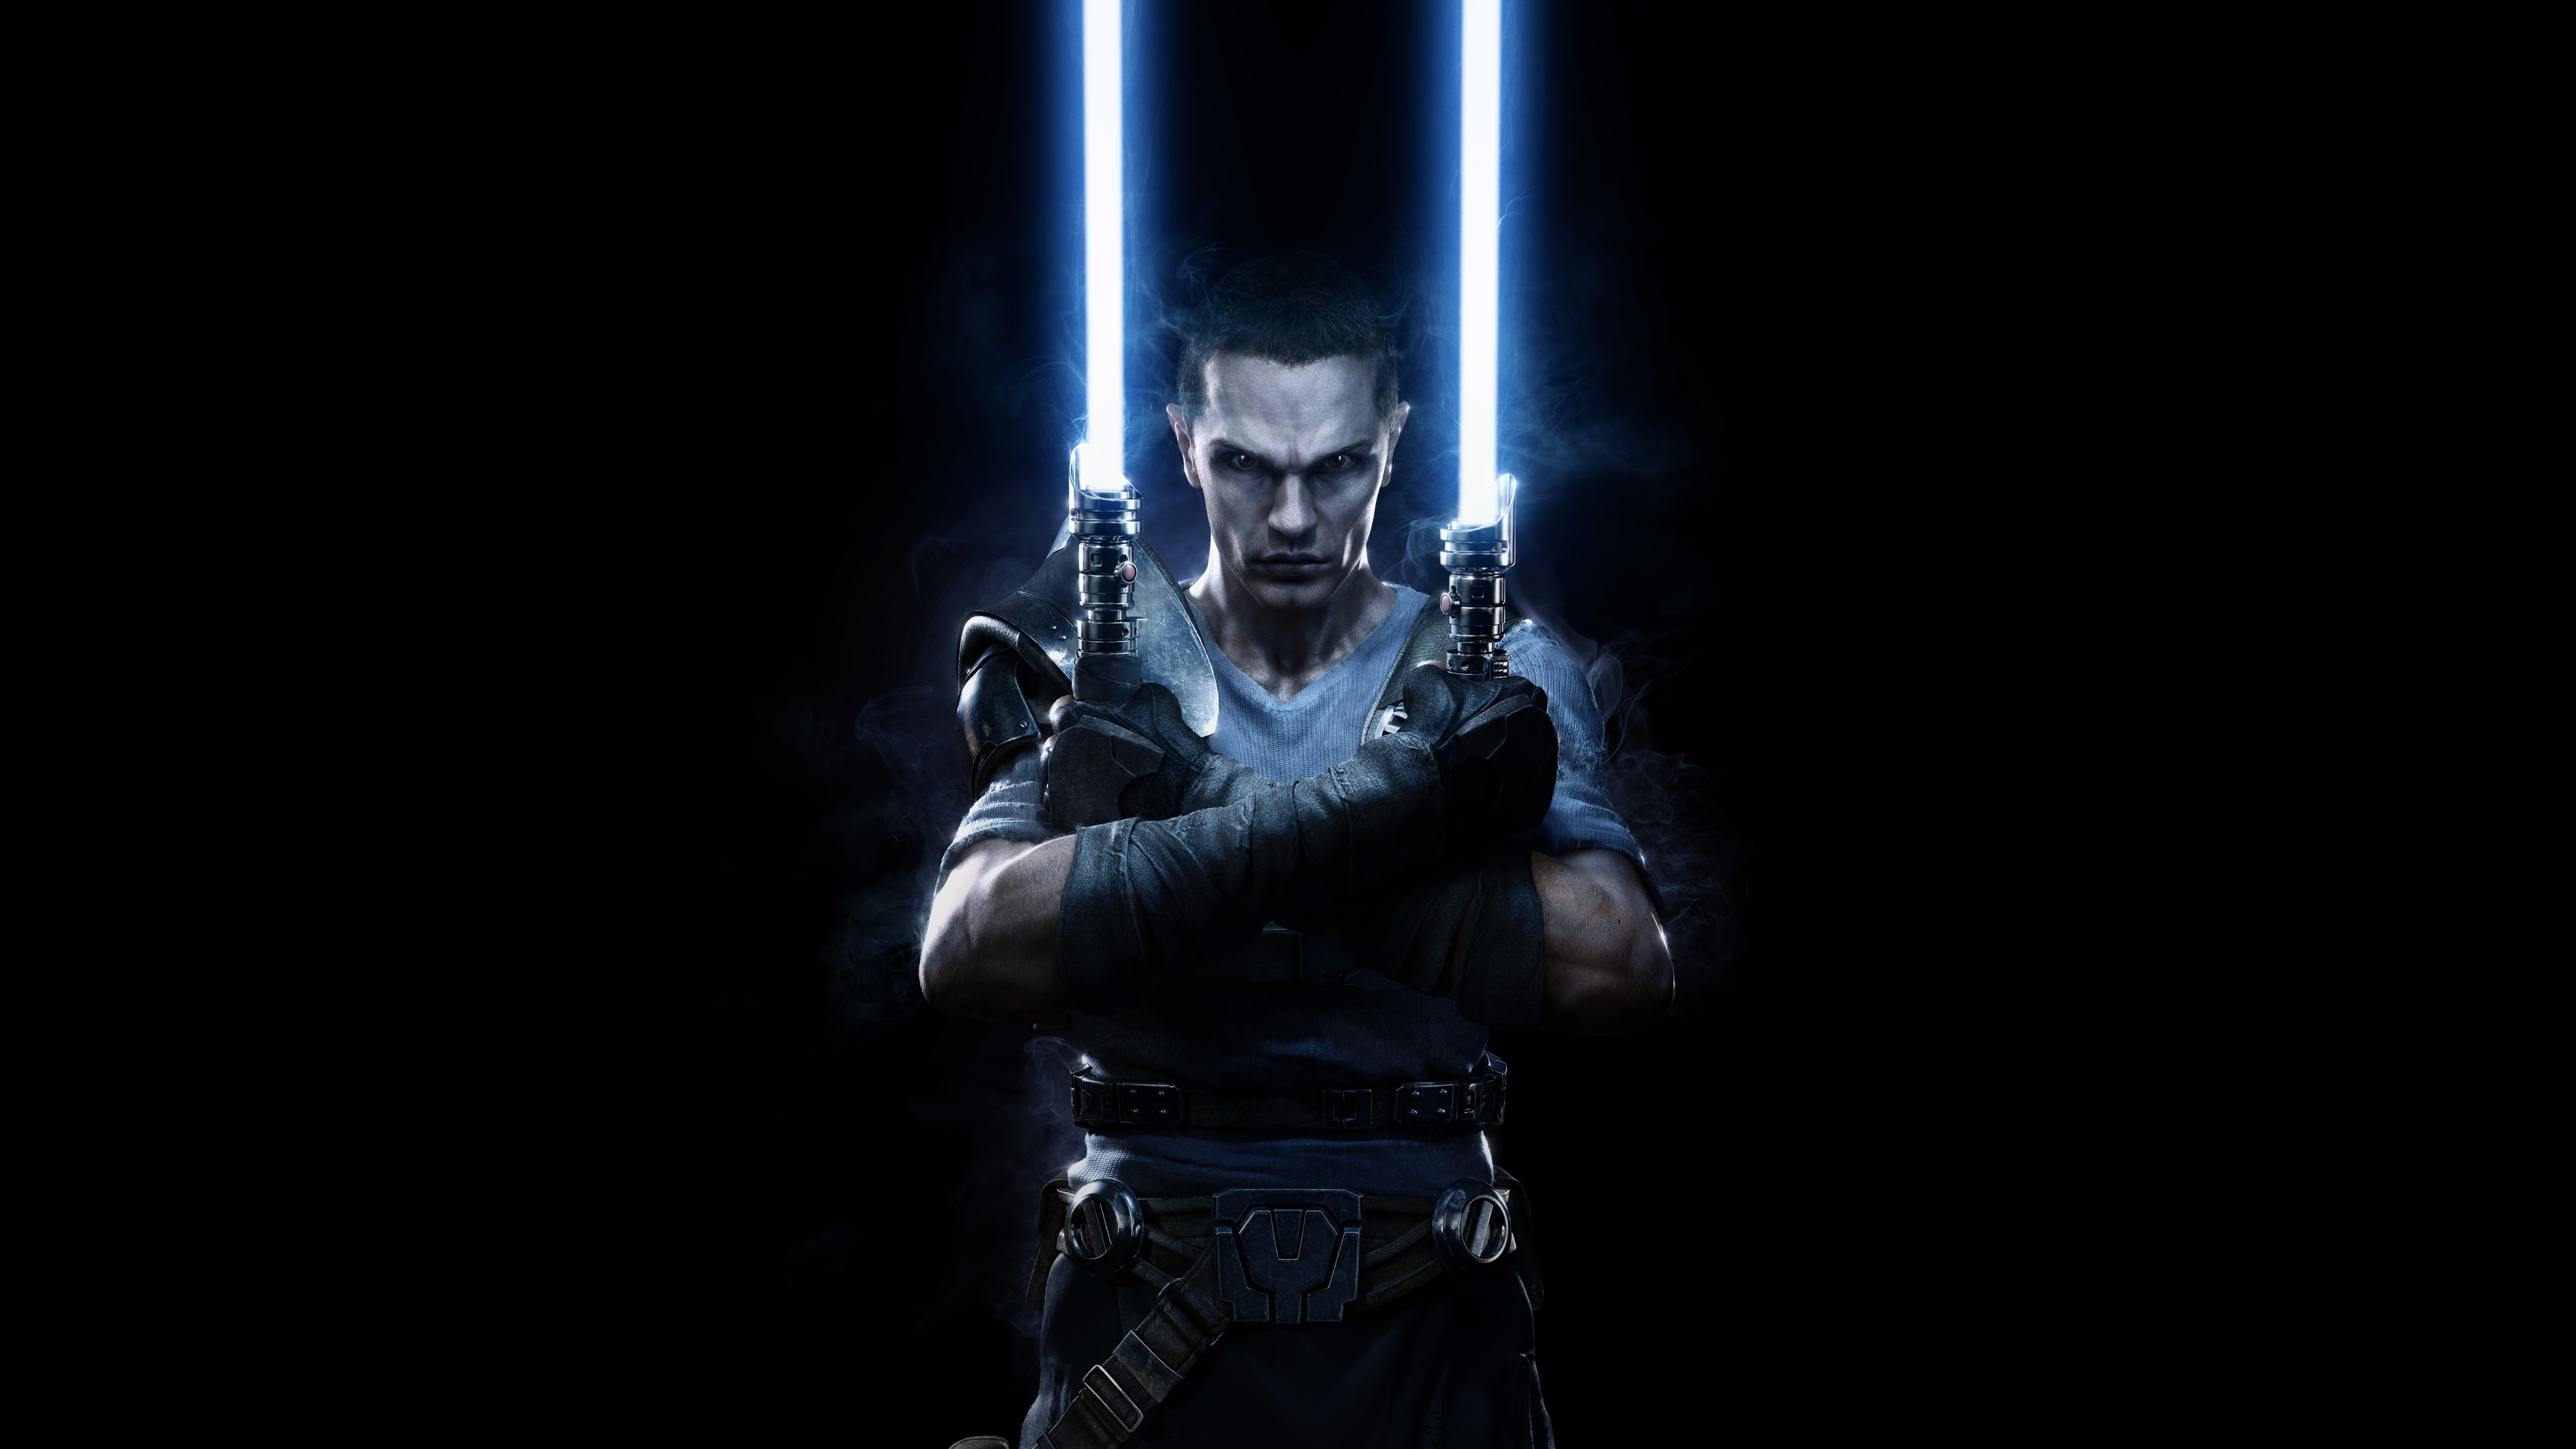 Wallpaper Star Wars The Force Unleashed 2 5120x2880 Uhd 5k Picture Image